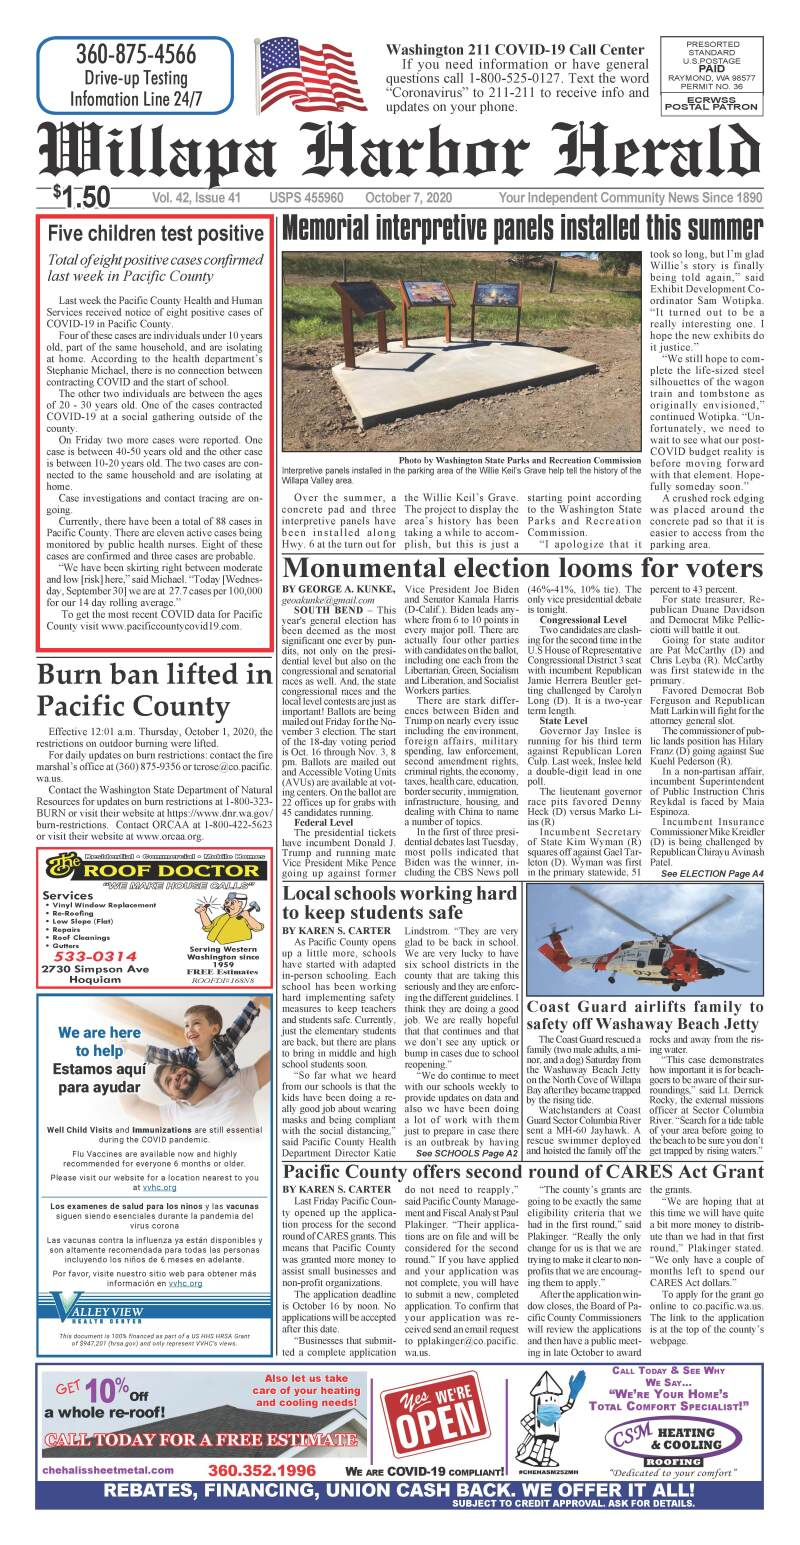 October 7, 2020 Willapa Harbor Herald and Pacific County Press